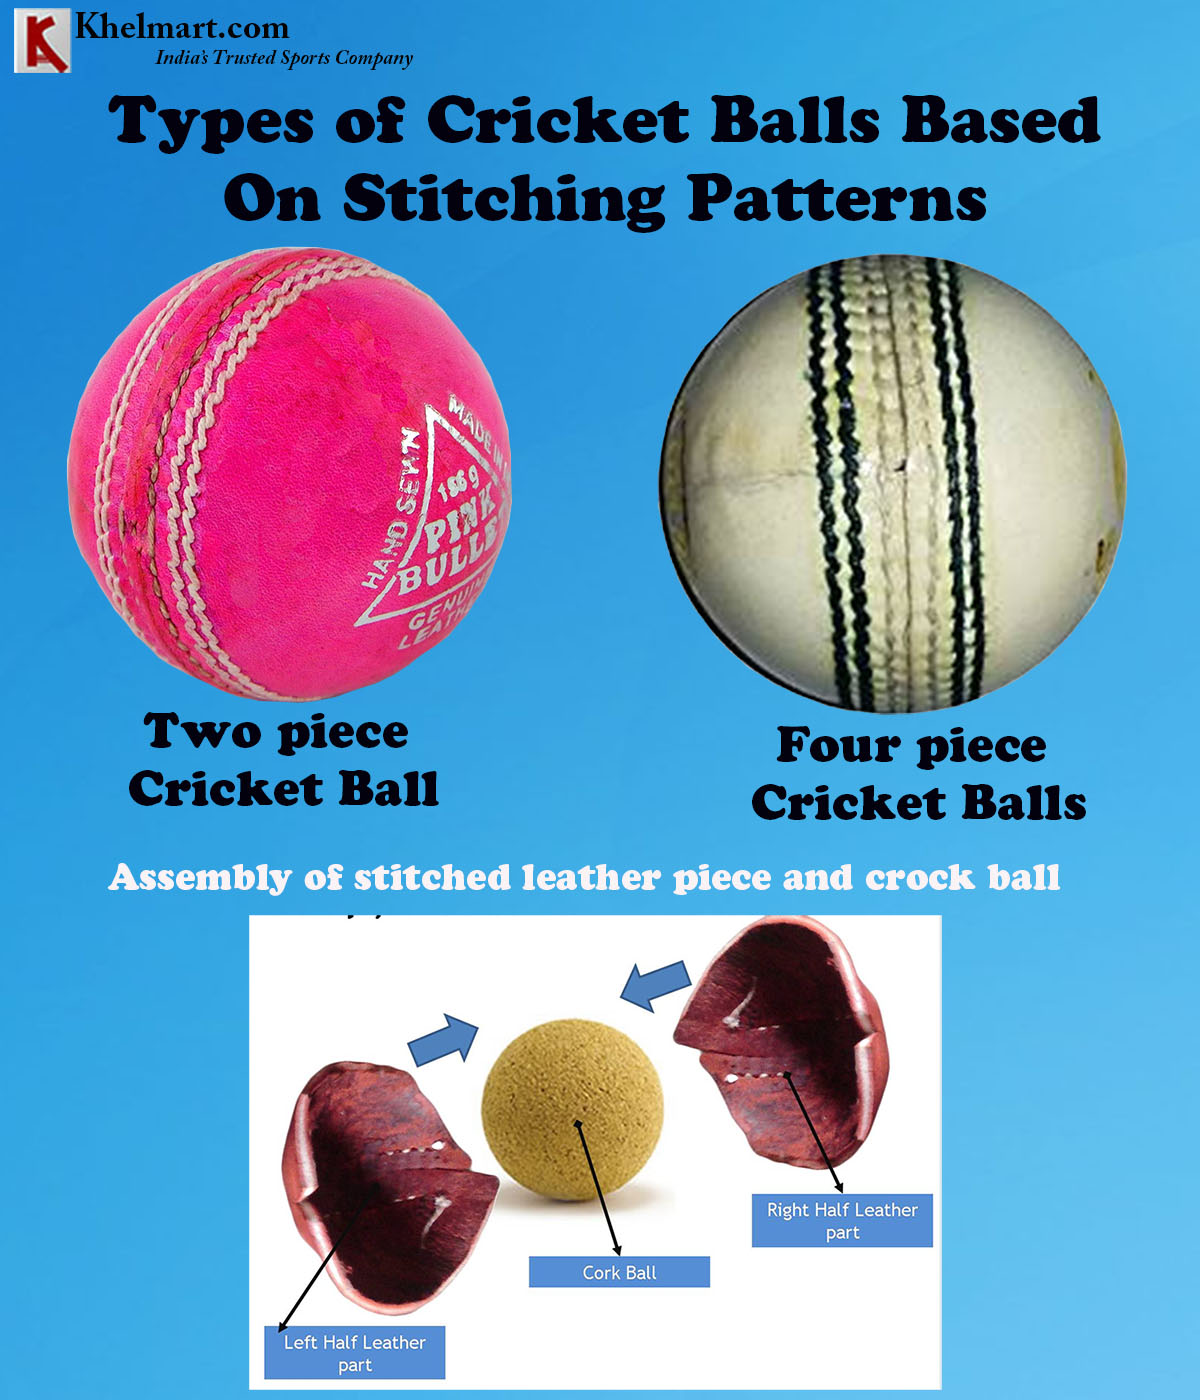 Types of Cricket Balls Based On Stitching Patterns